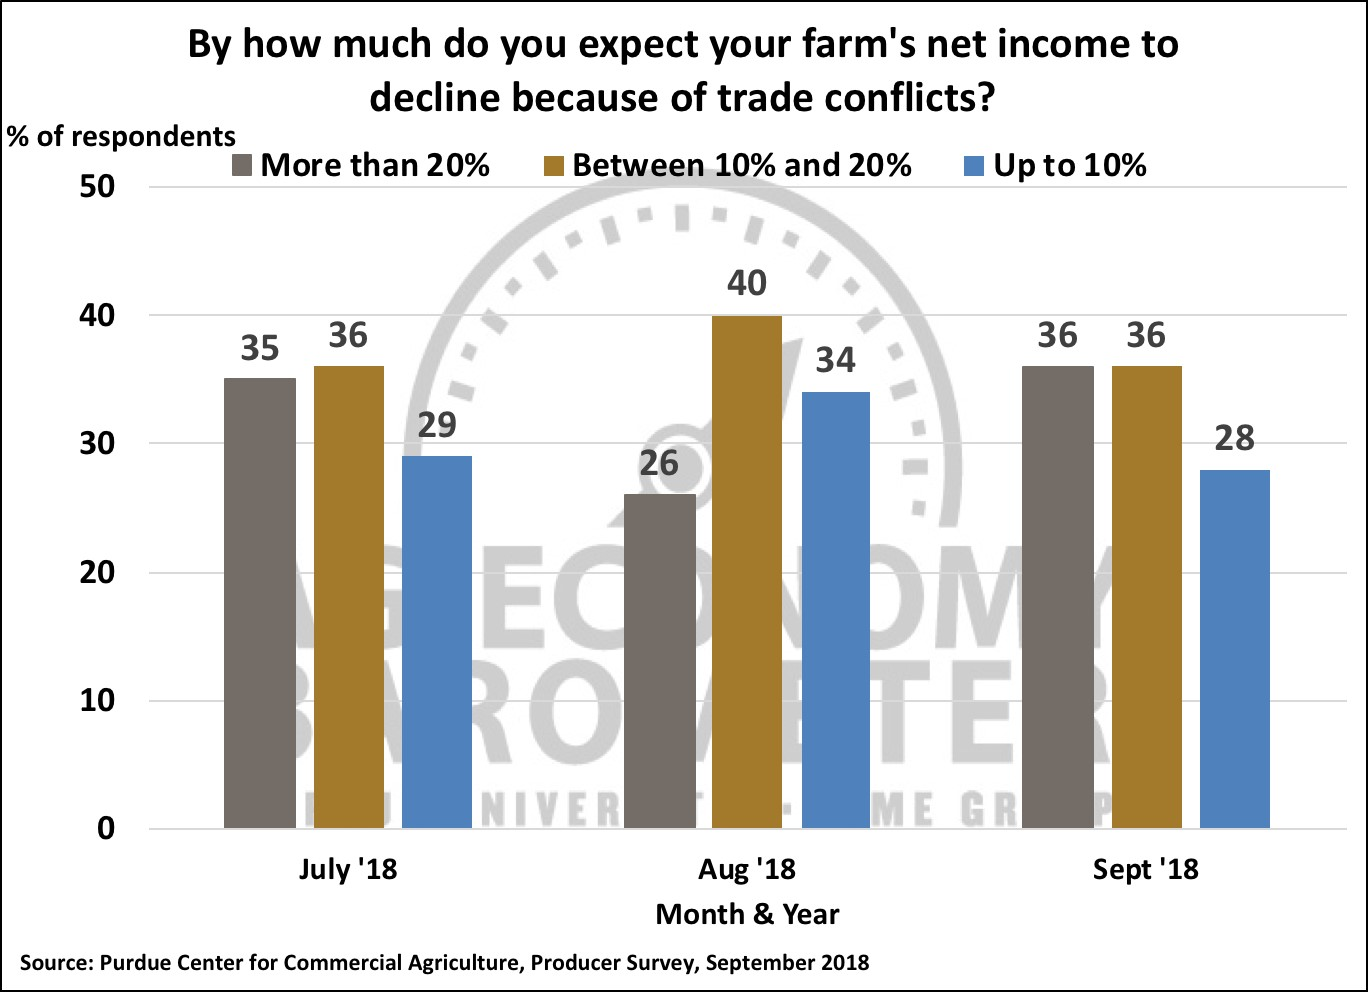 Figure 5. By how much do you expect your farm's net income to decline because of trade conflicts?, October 2015-September 2018.